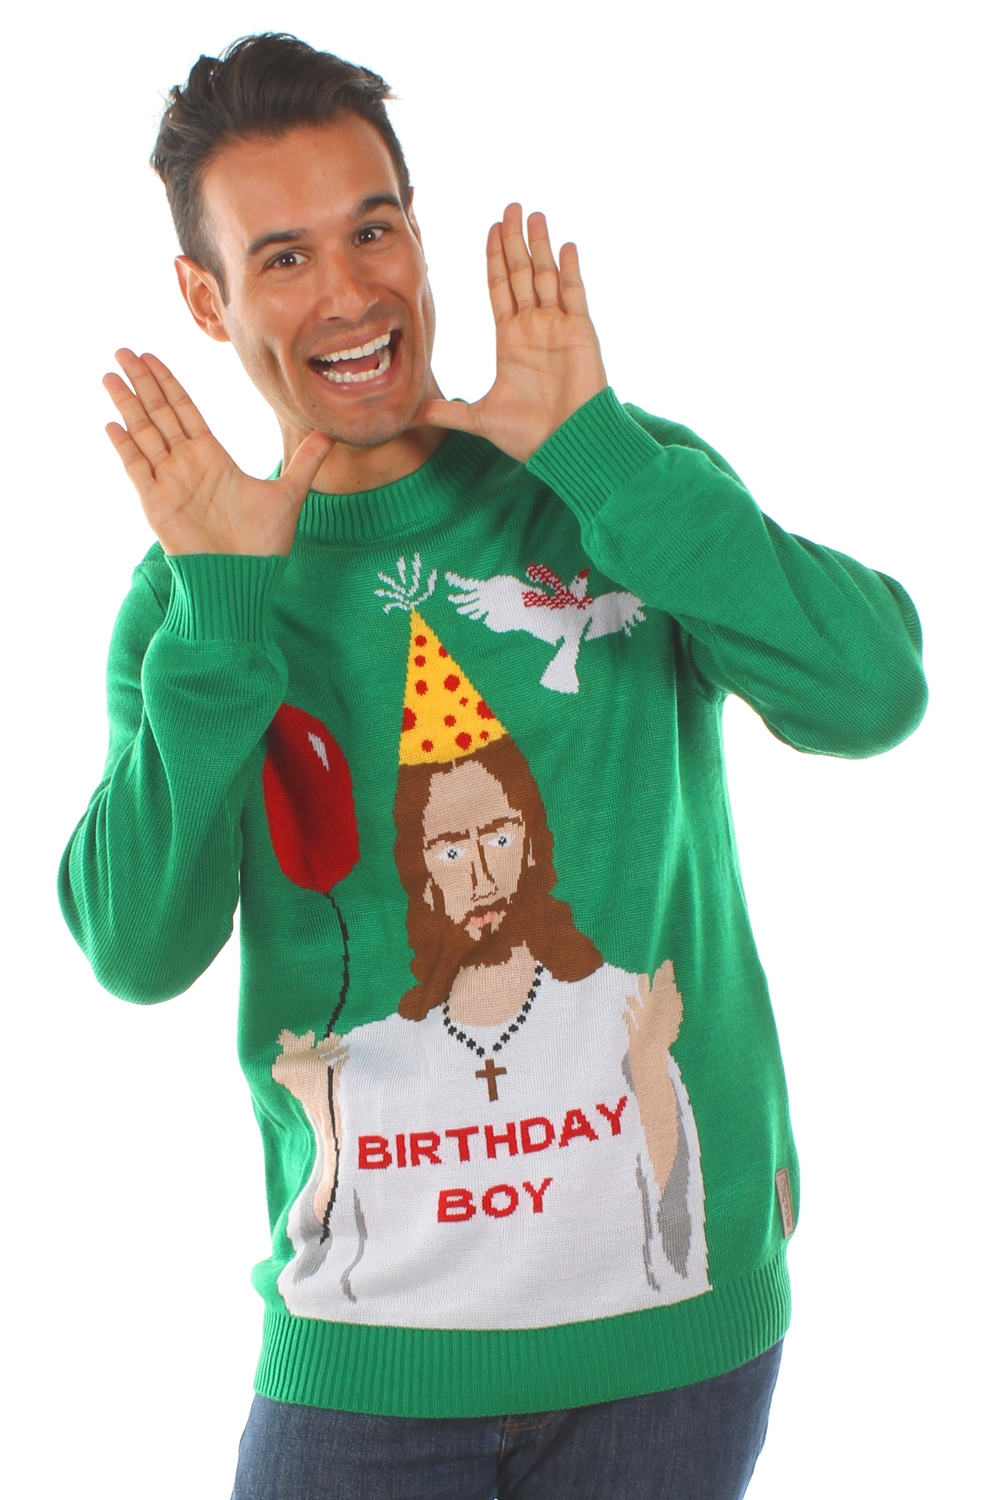 Christmas Sweater - Jesus Birthday Boy